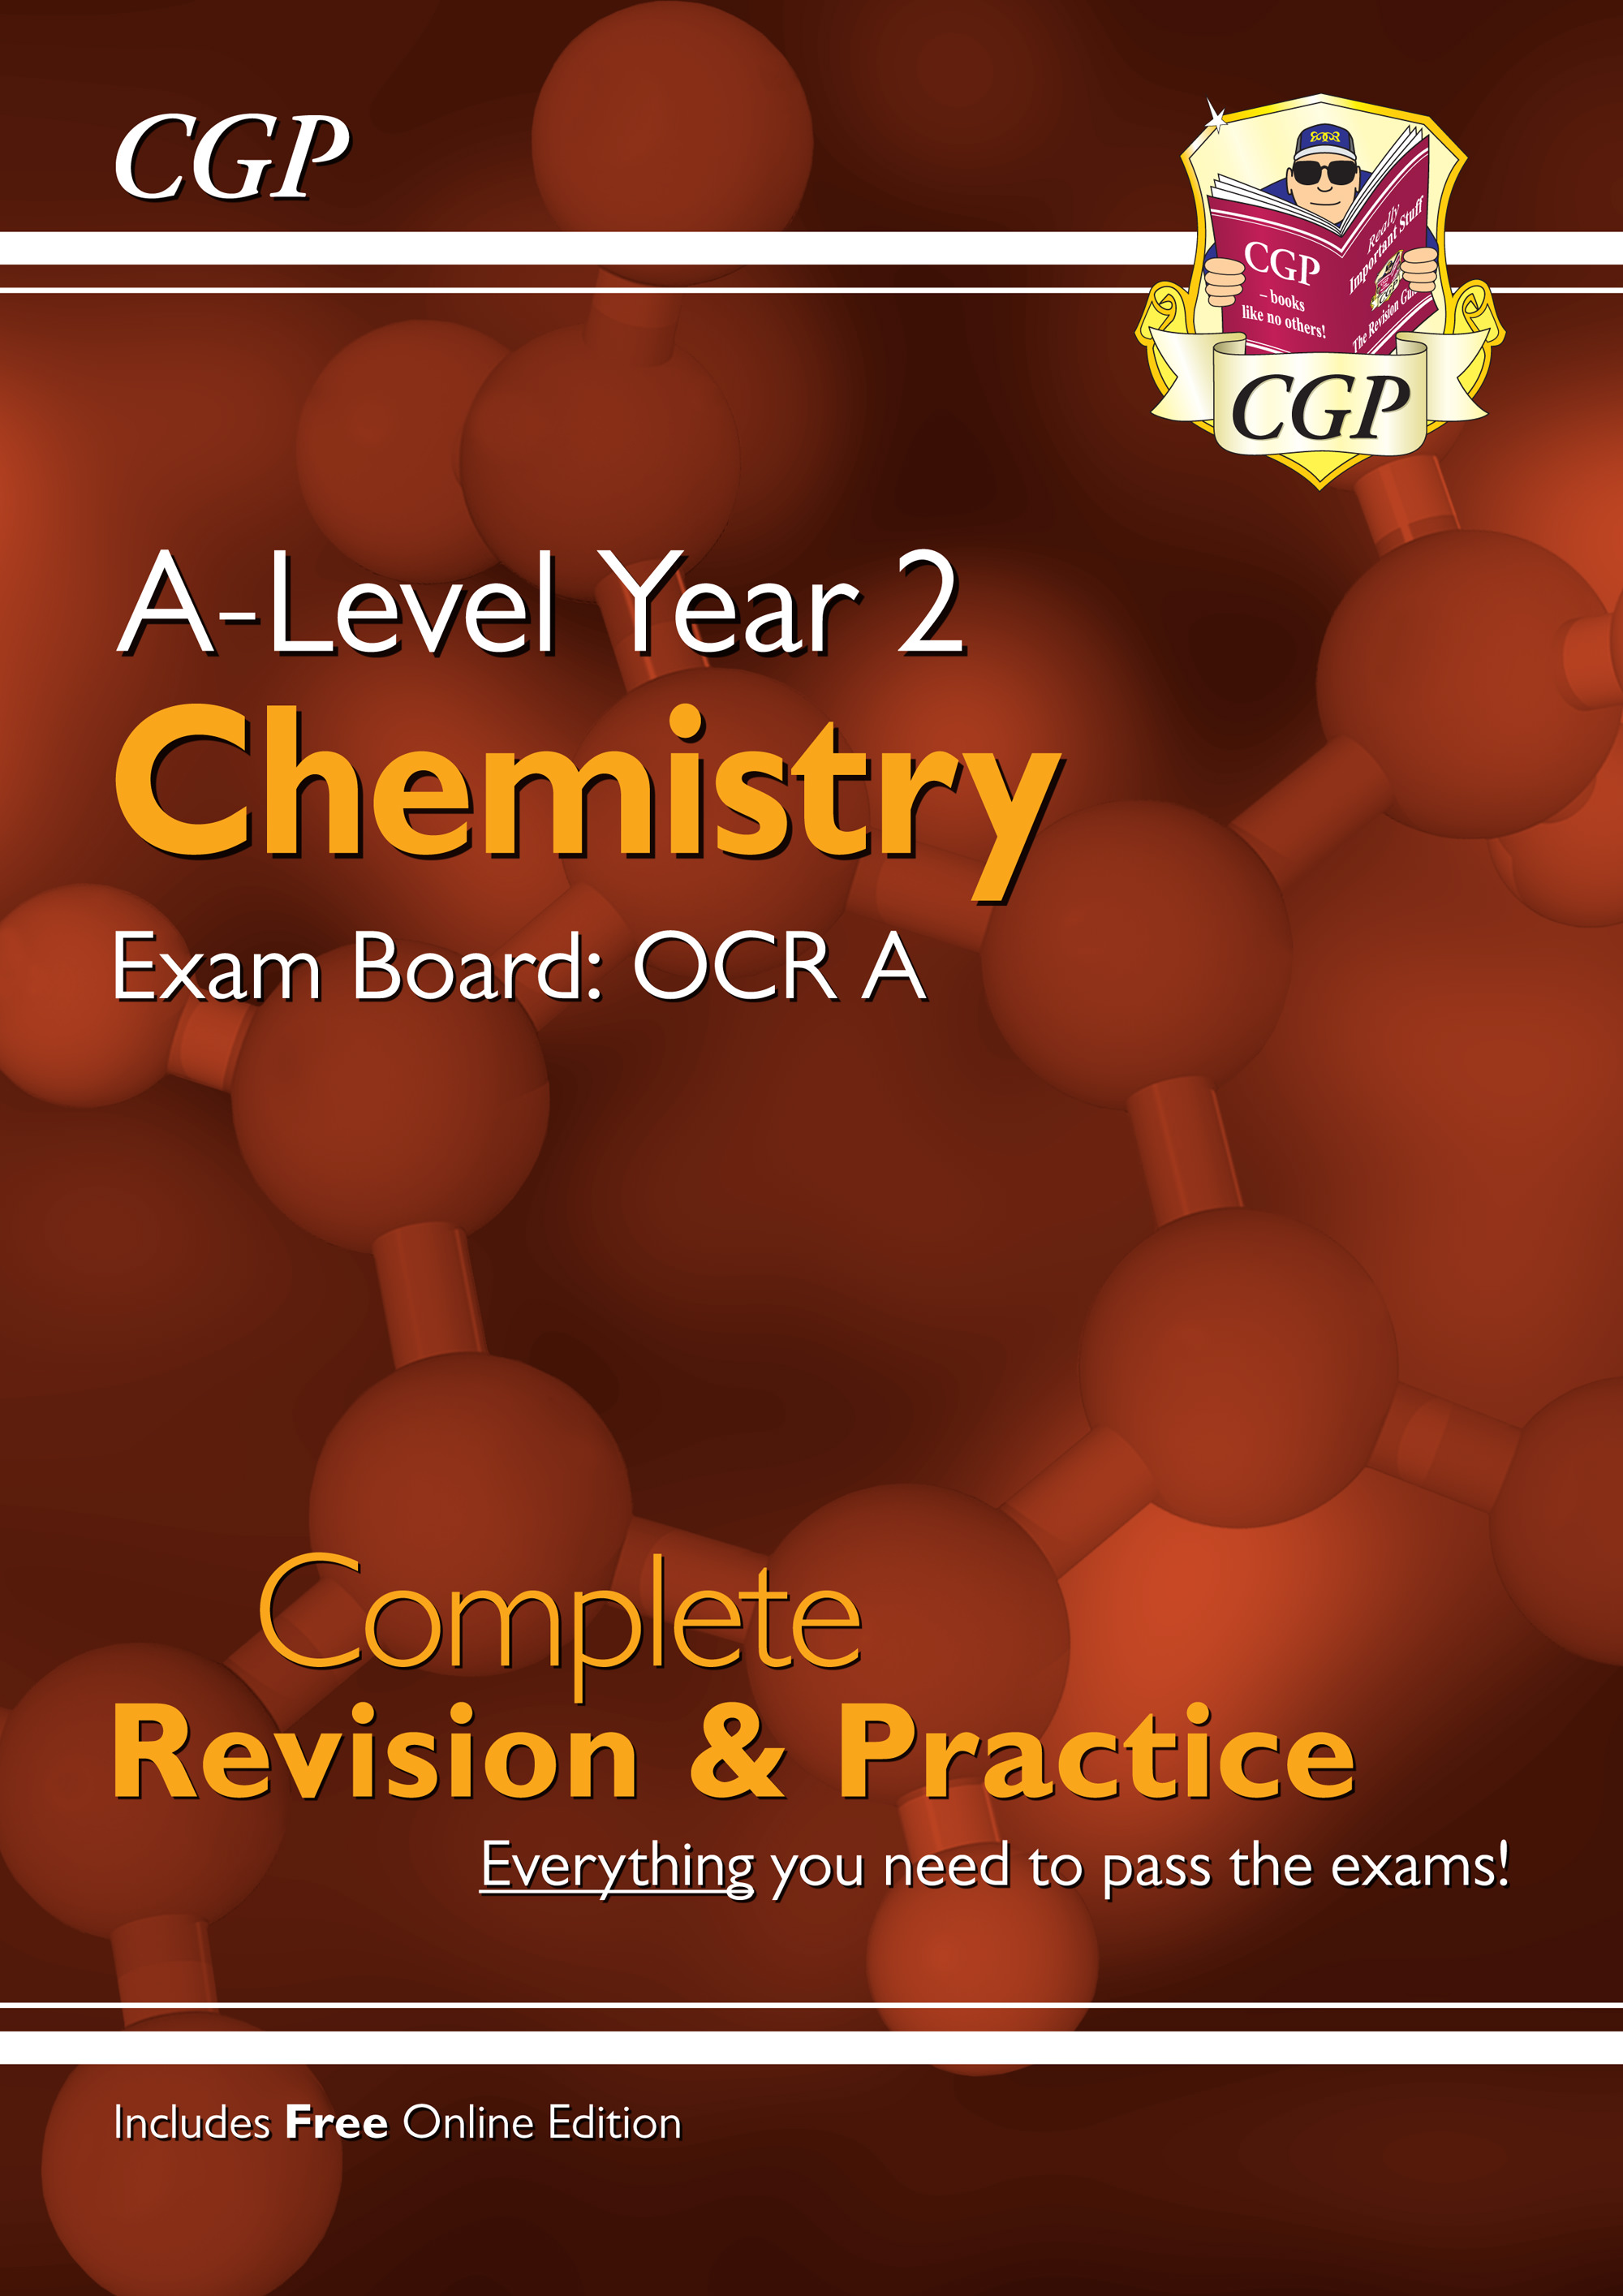 CRAR63 - A-Level Chemistry: OCR A Year 2 Complete Revision & Practice with Online Edition